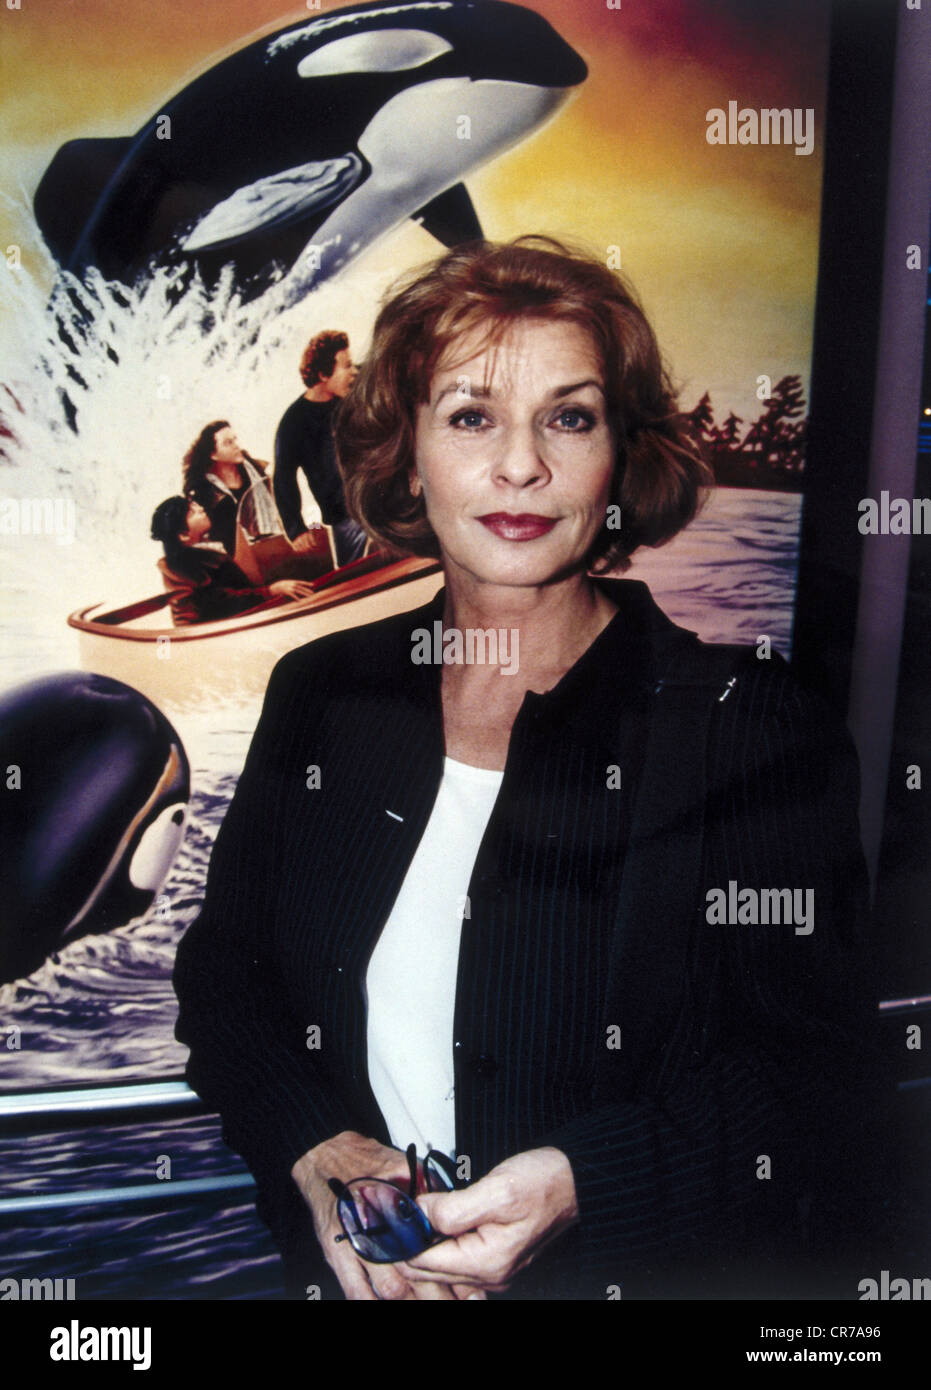 """Berger, Senta, * 13.5.1941, Austrian actress, half length, as UNICEF ambassador, at the preview of the movie """"Free Willy II"""" in Munich, August 1995, Stock Photo"""